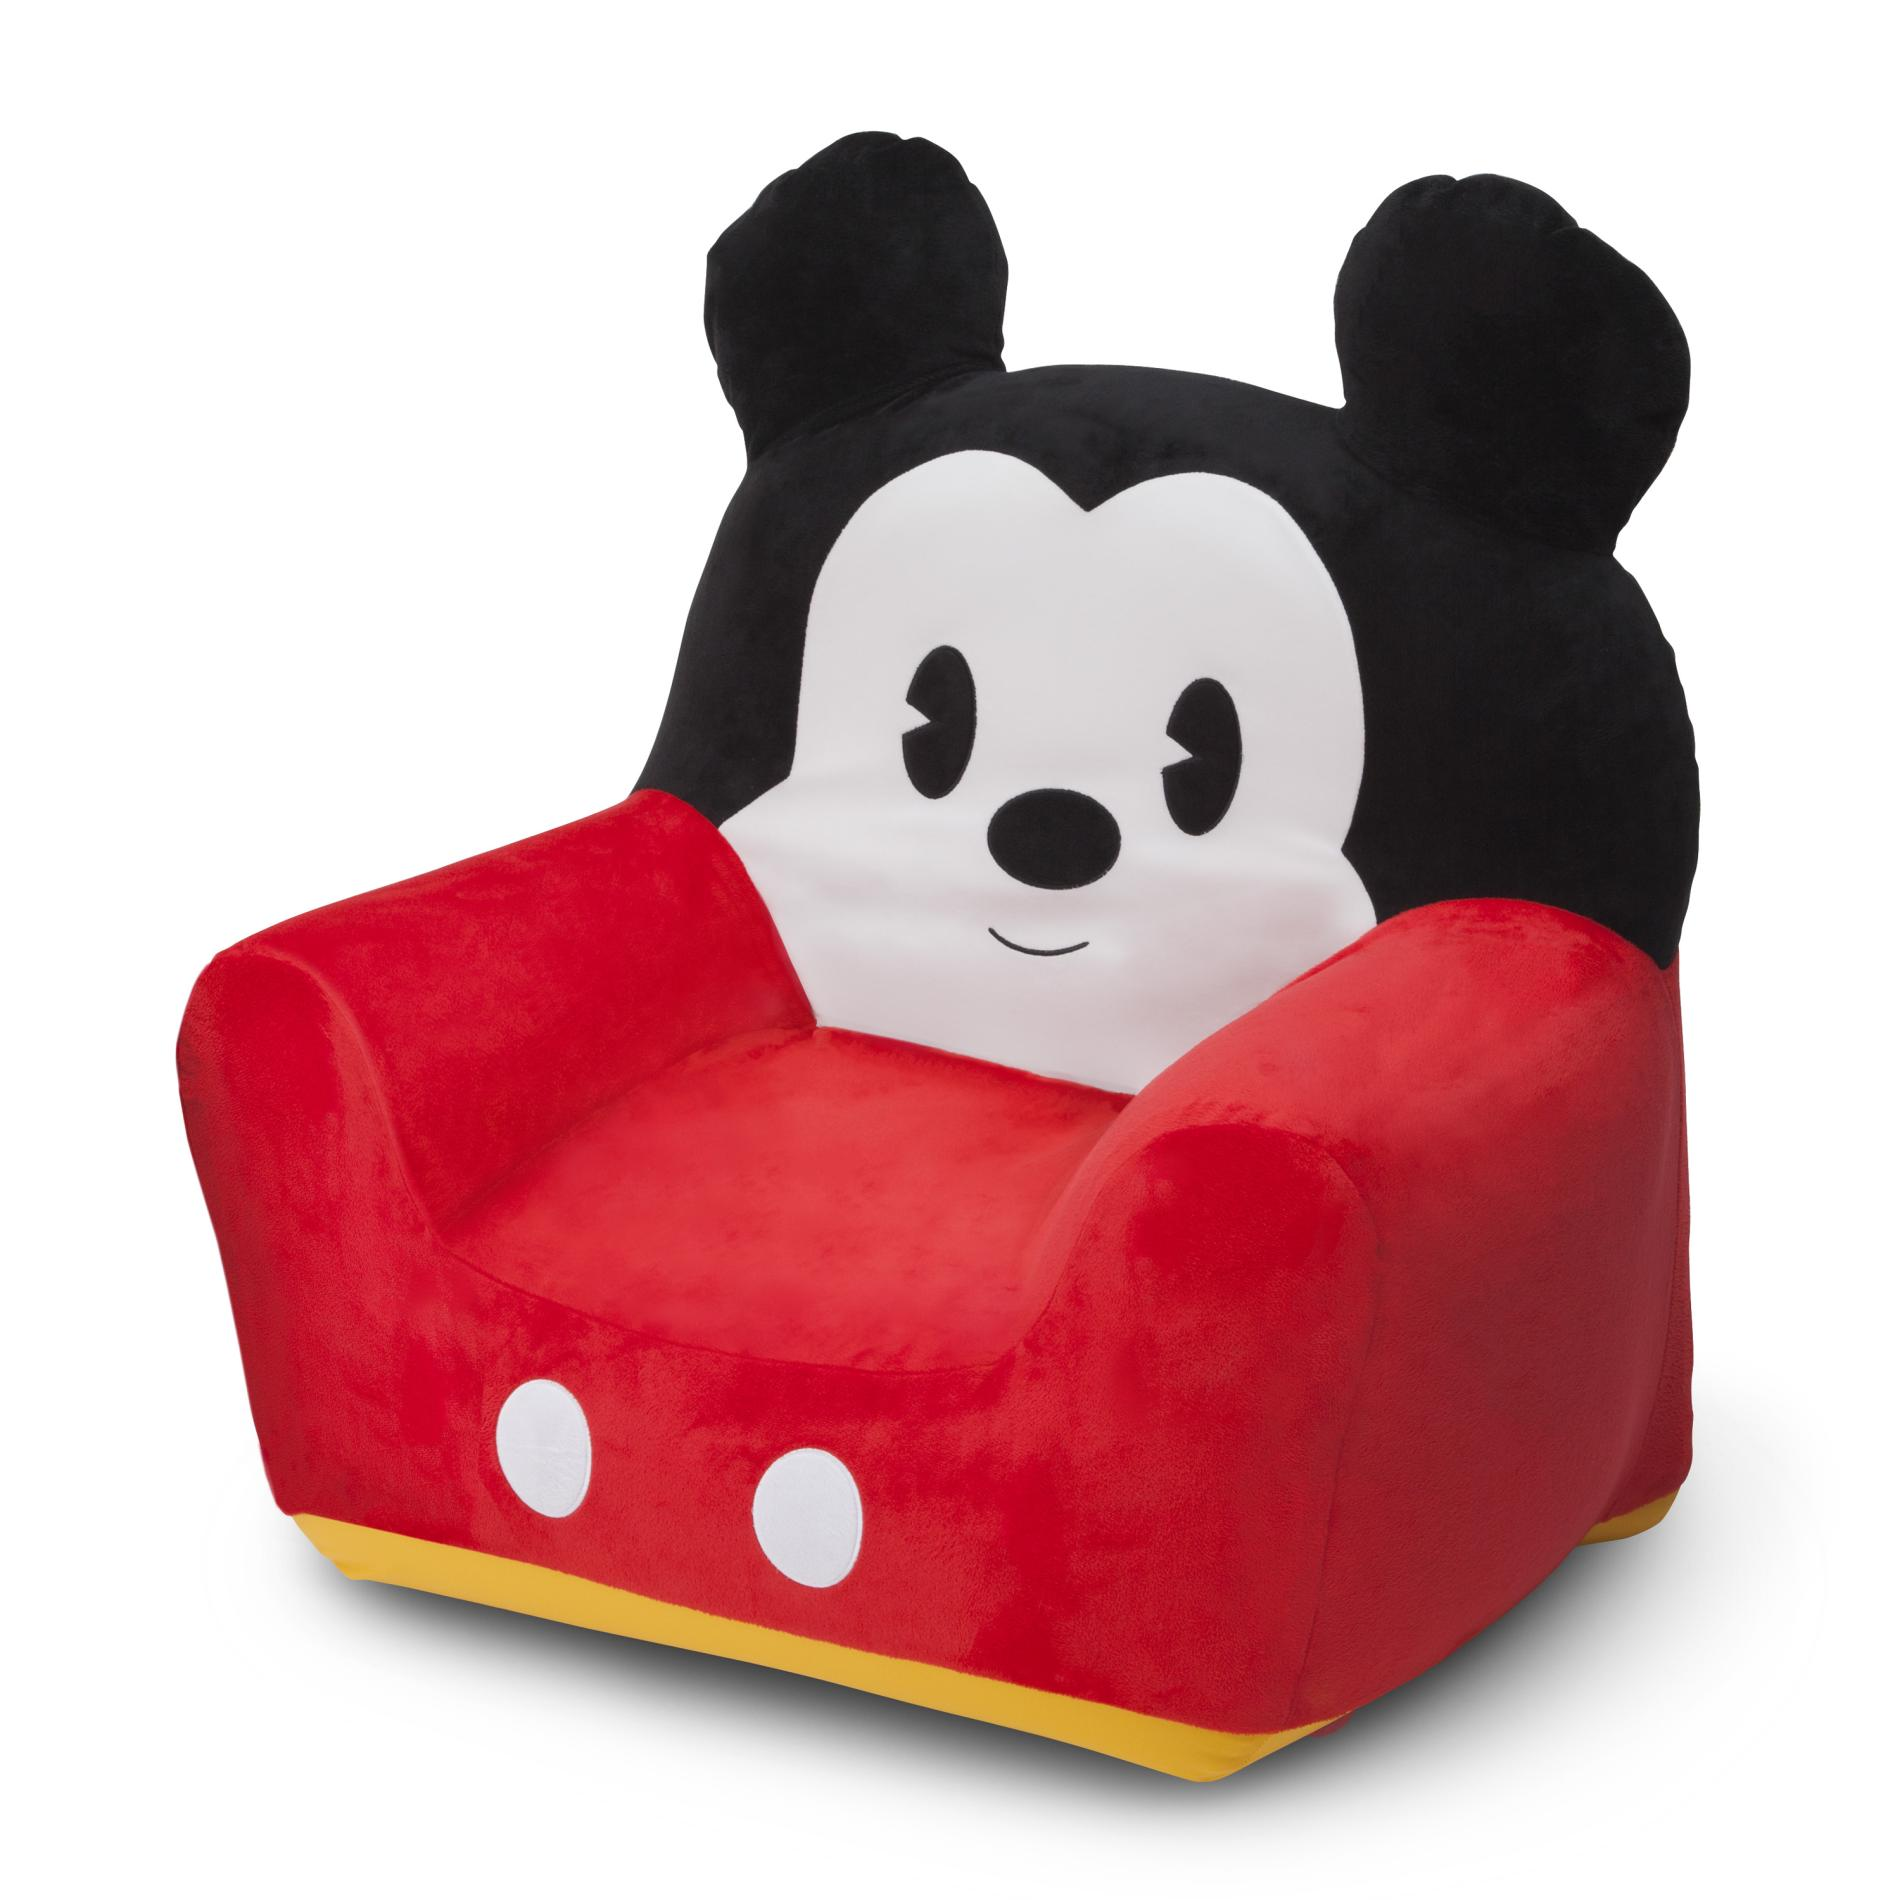 Toddler Boy Chair Disney Mickey Mouse Toddler Boy 39s Chair